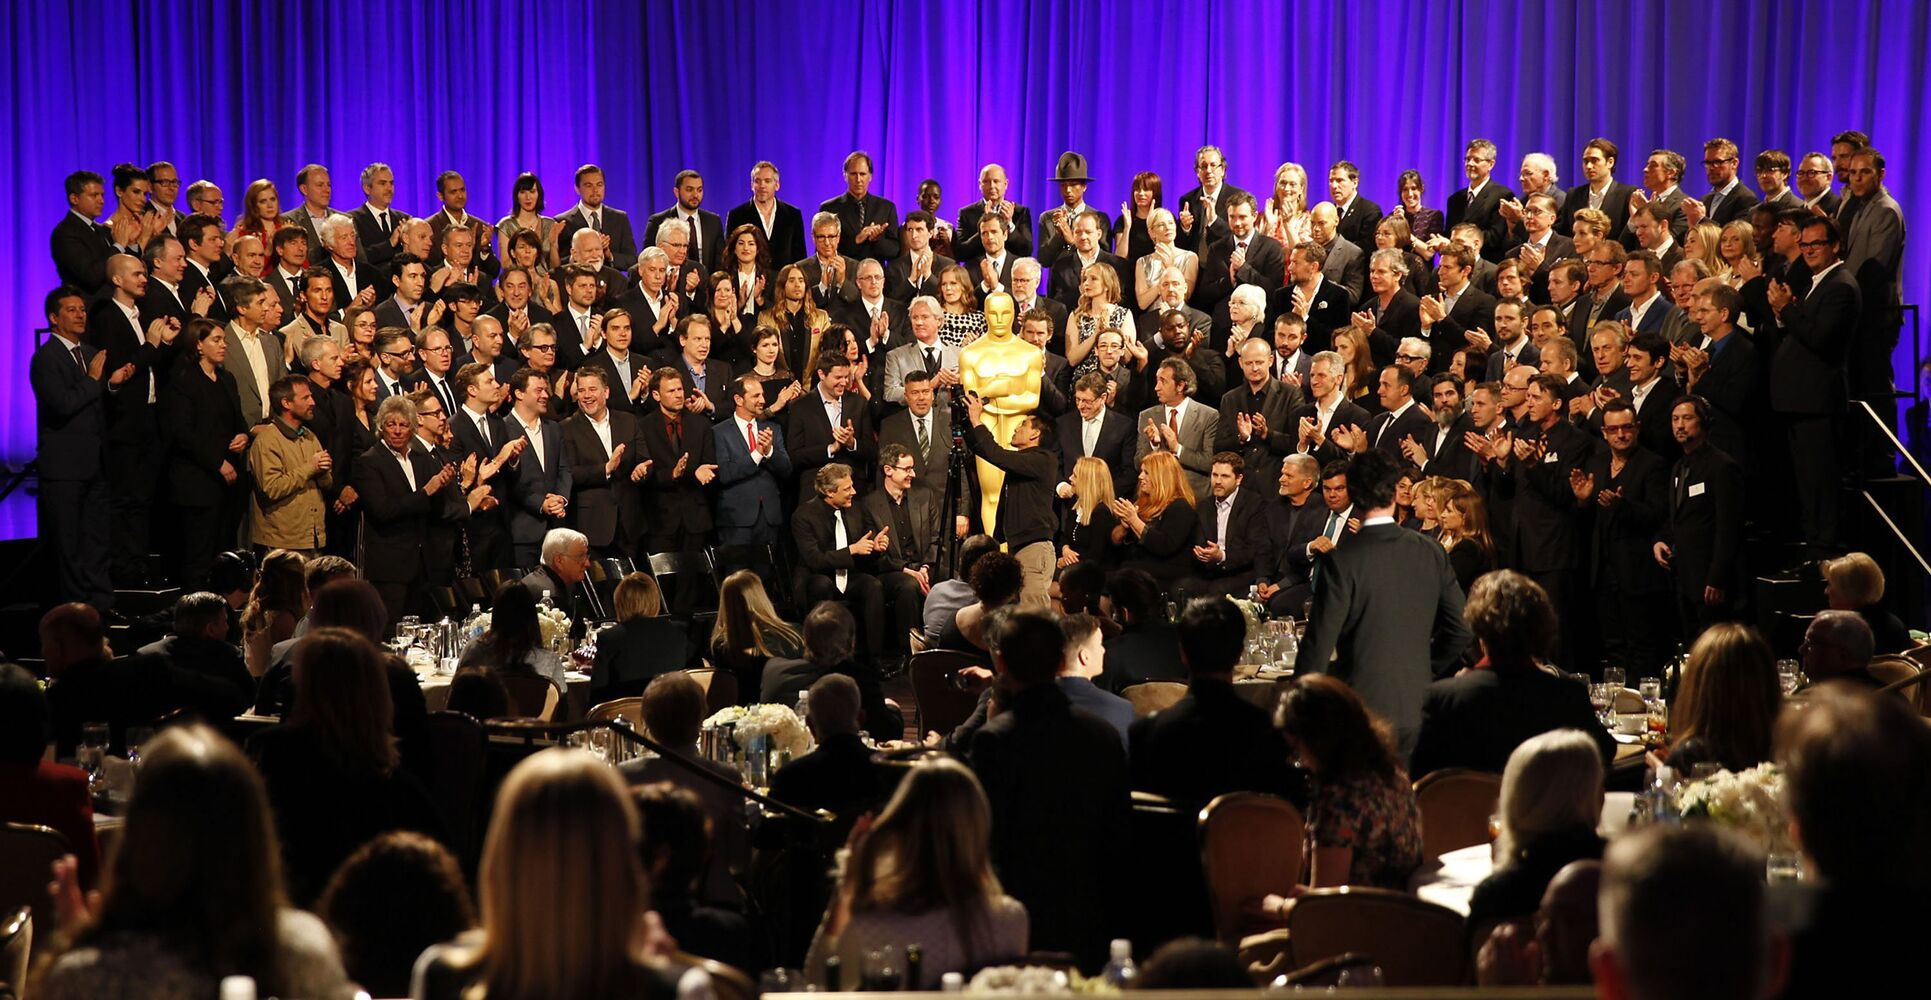 The 2014 class portrait at the 86th Annual Oscar Nominees Luncheon.  (Robert Gauthier / Los Angeles Times)